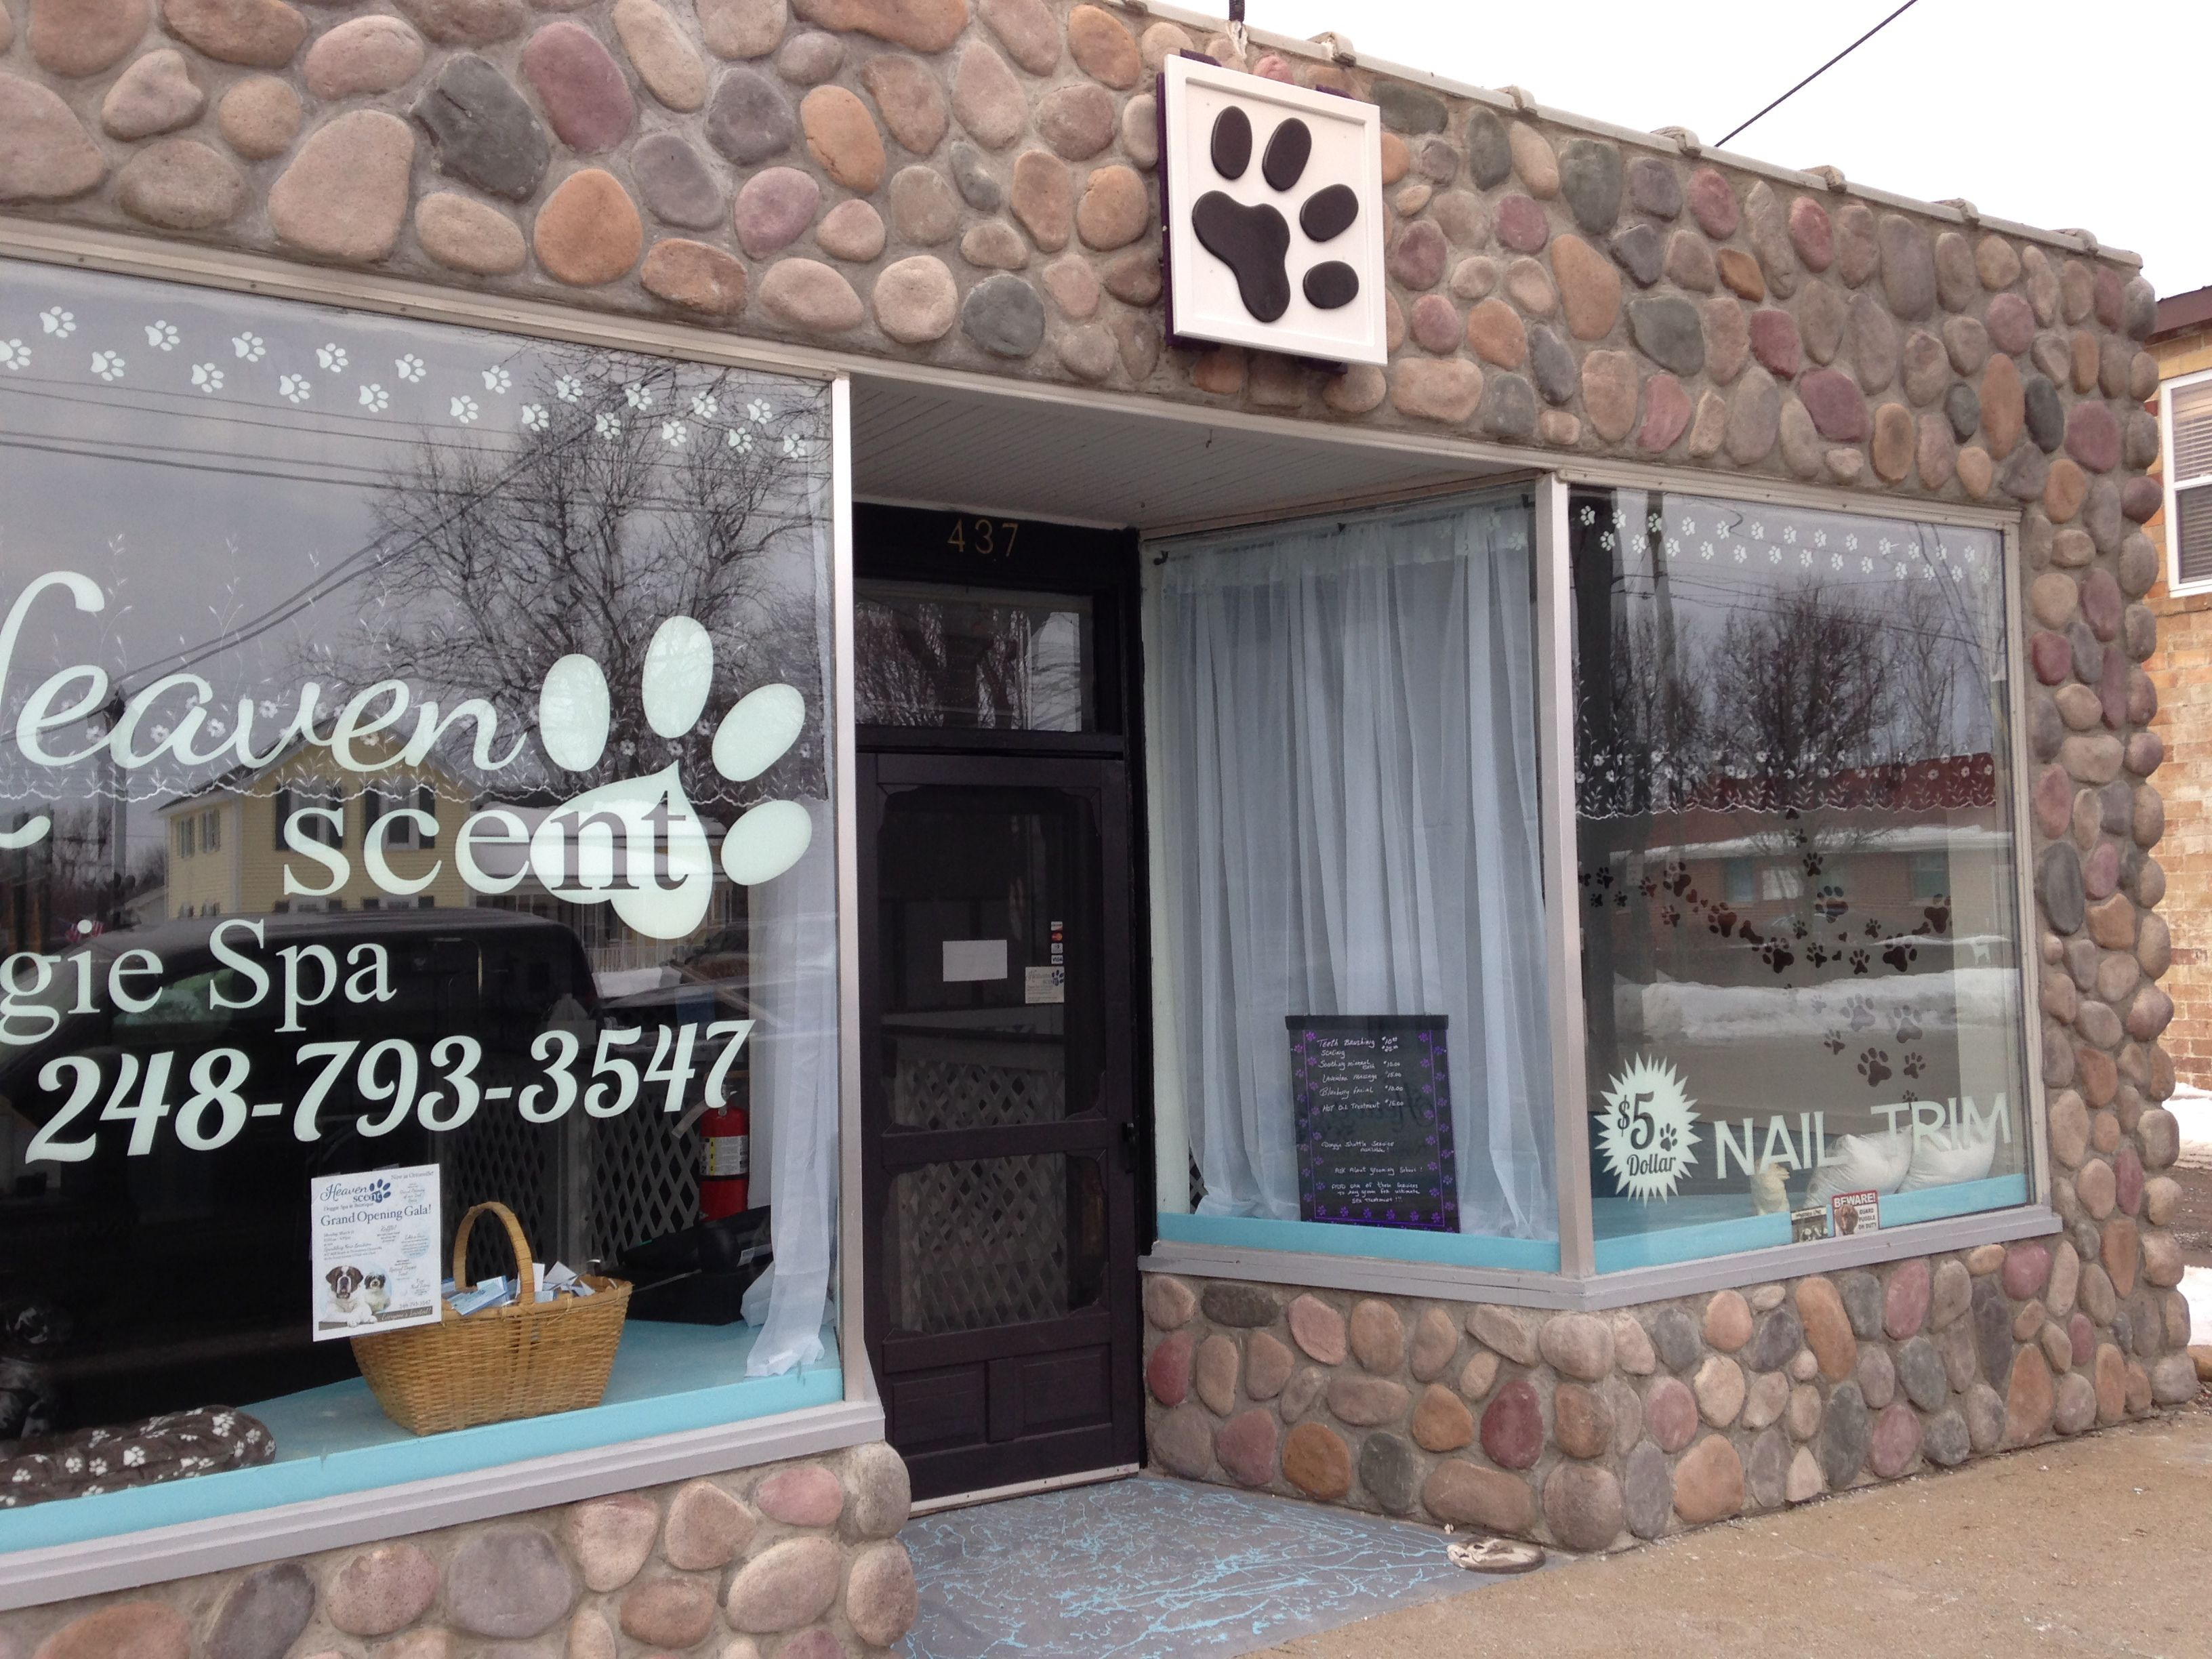 Second location in Ortonville Trim nails, Grooming shop